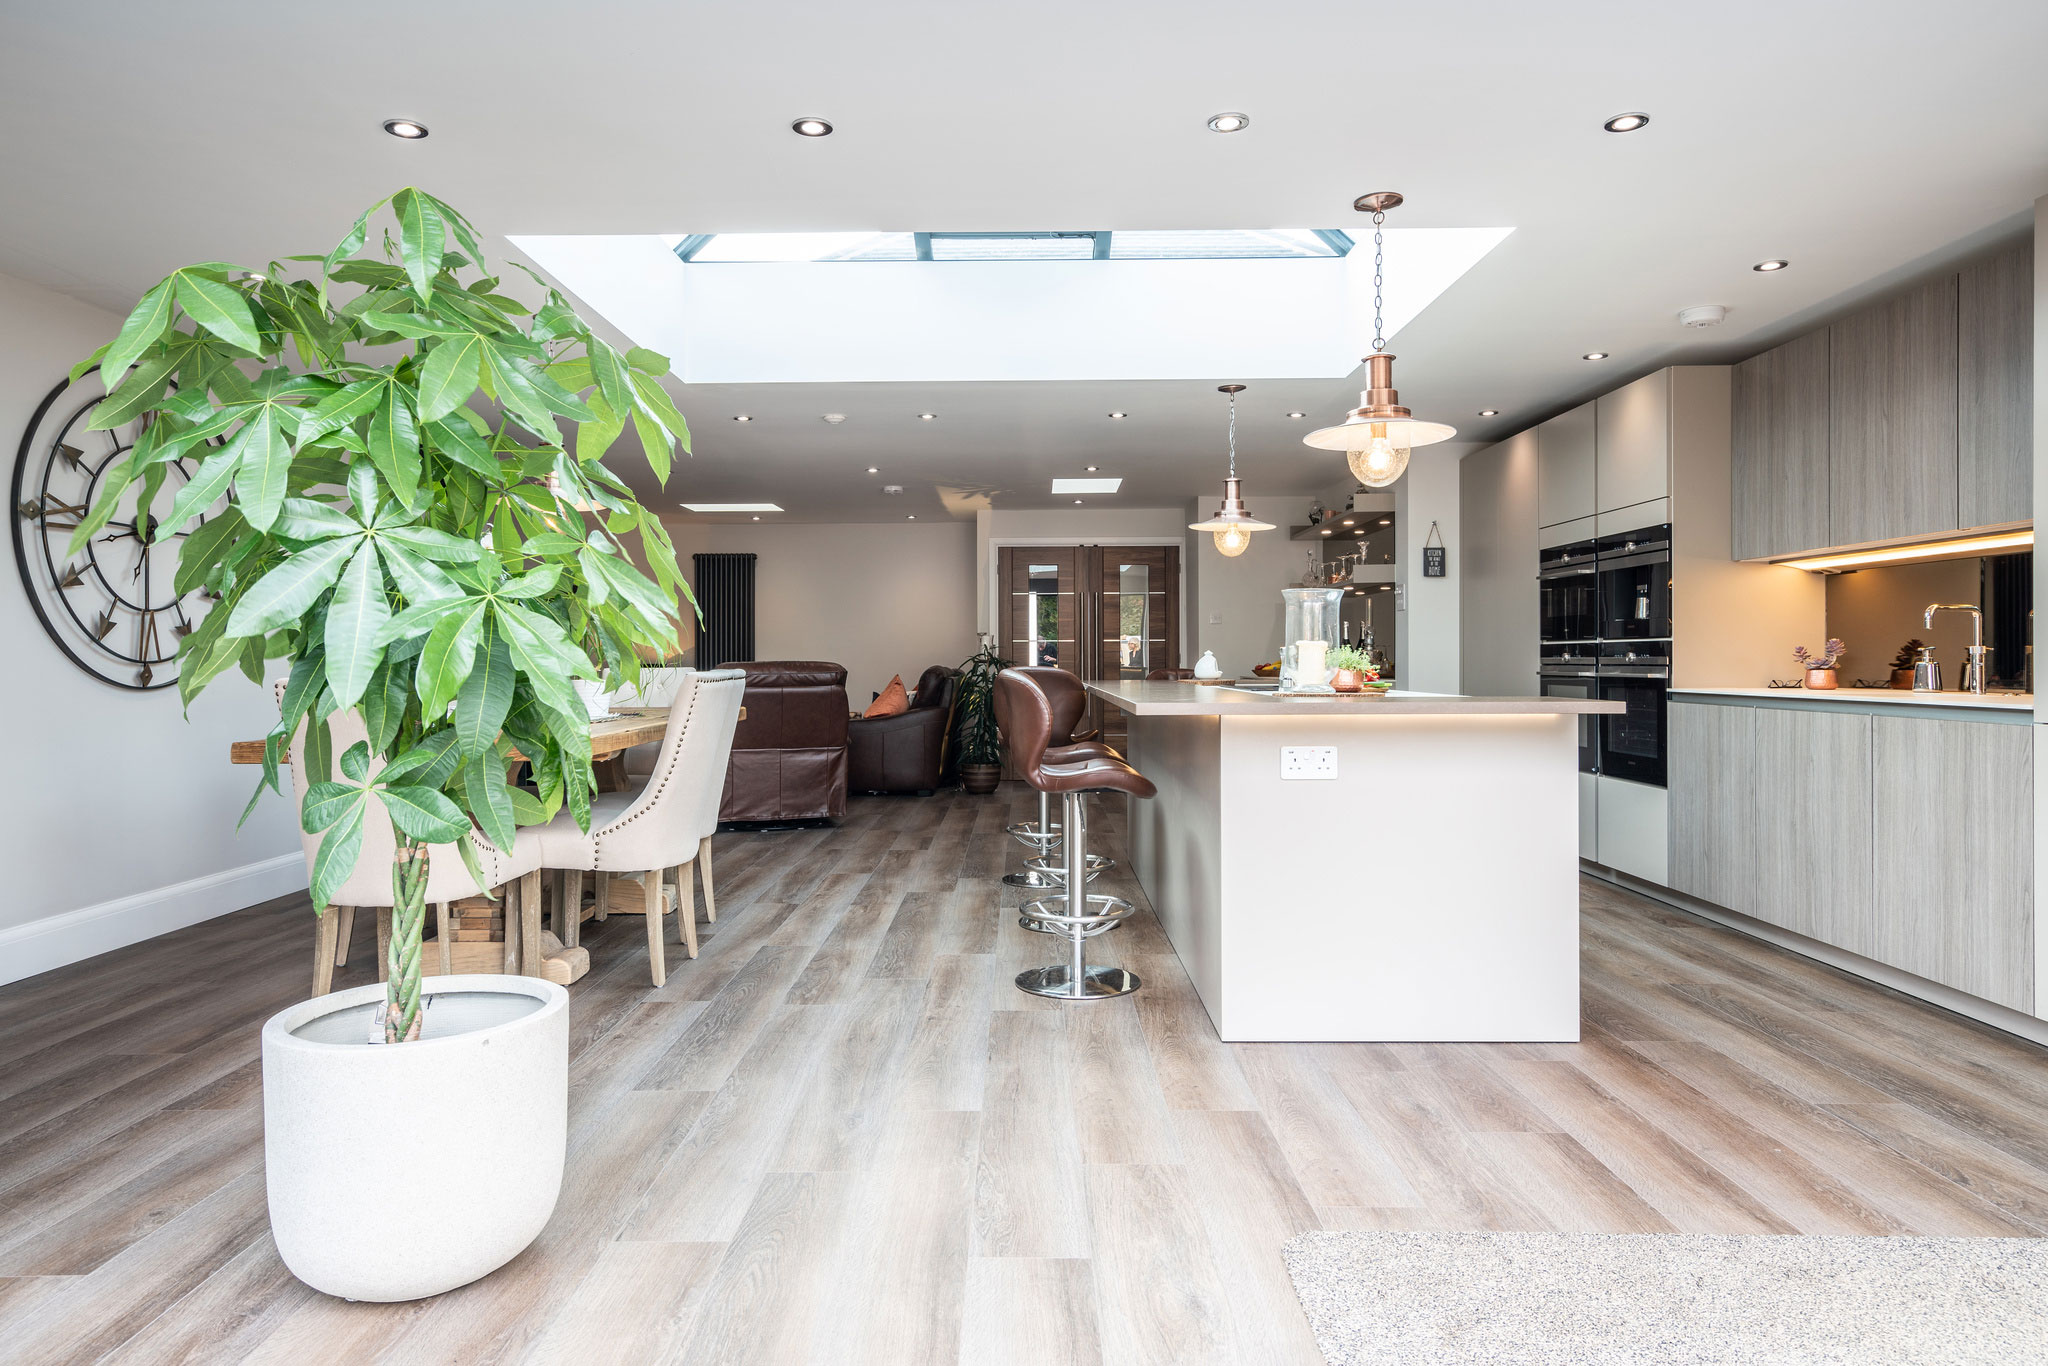 Image of Myers Touch Daniels Kitchen 01224 ZF 2442 14358 1 069 in A space designed for socializing - Cosentino